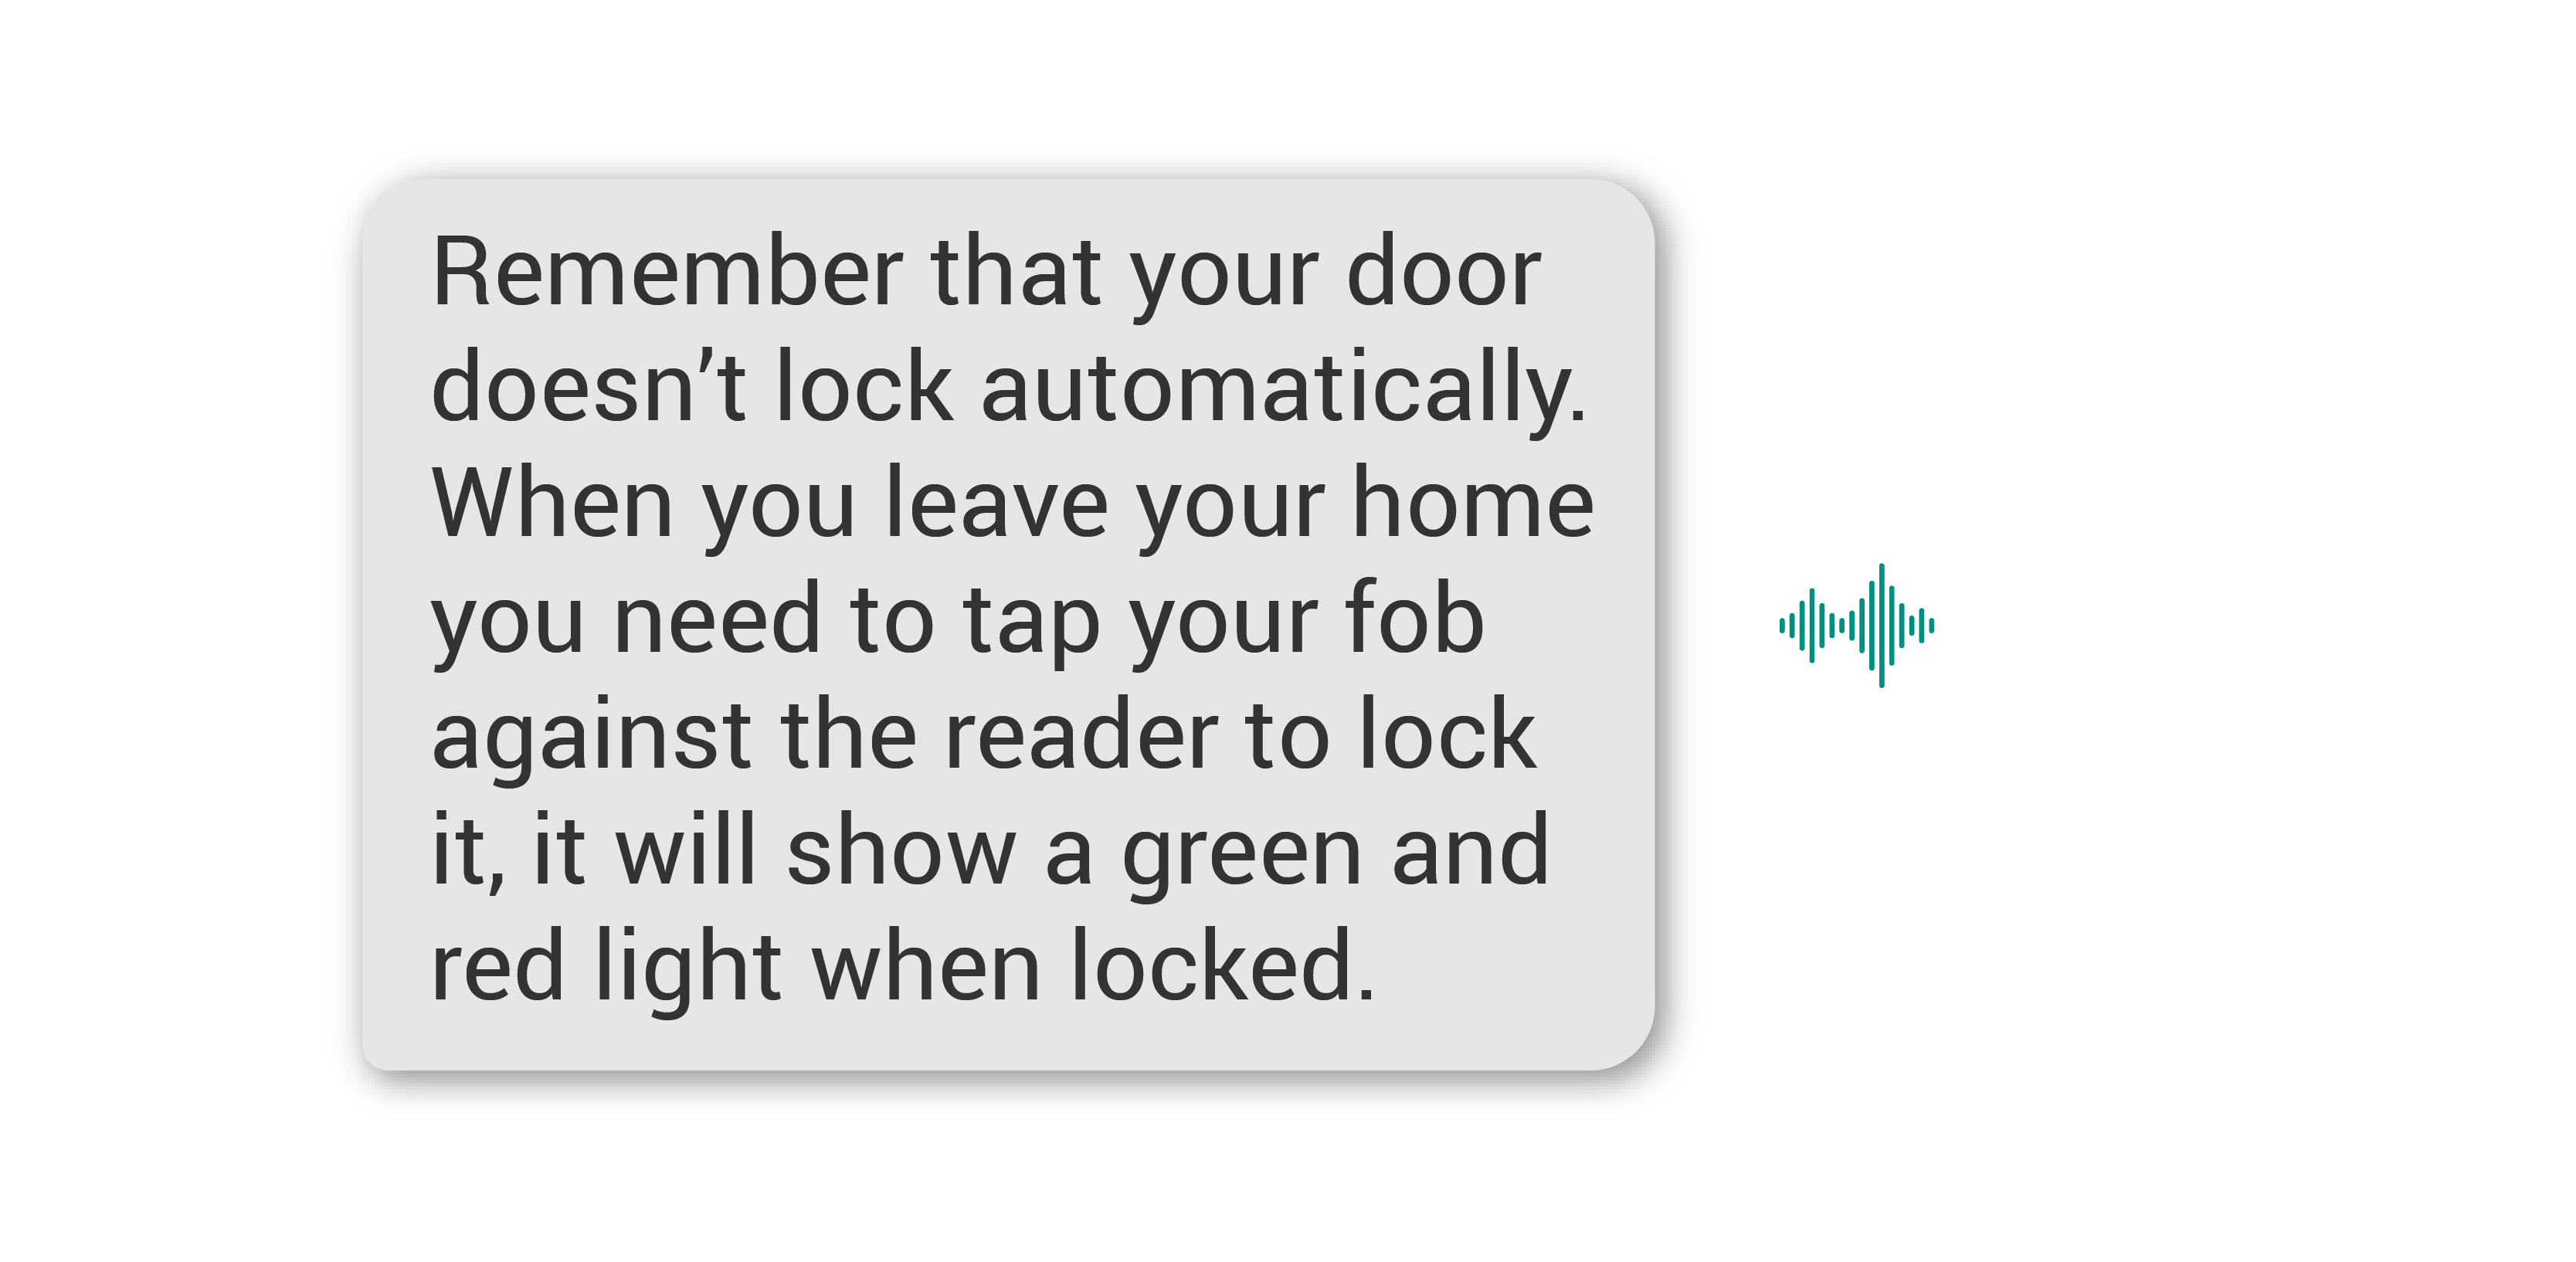 Rental managers: security information via an AI assistant